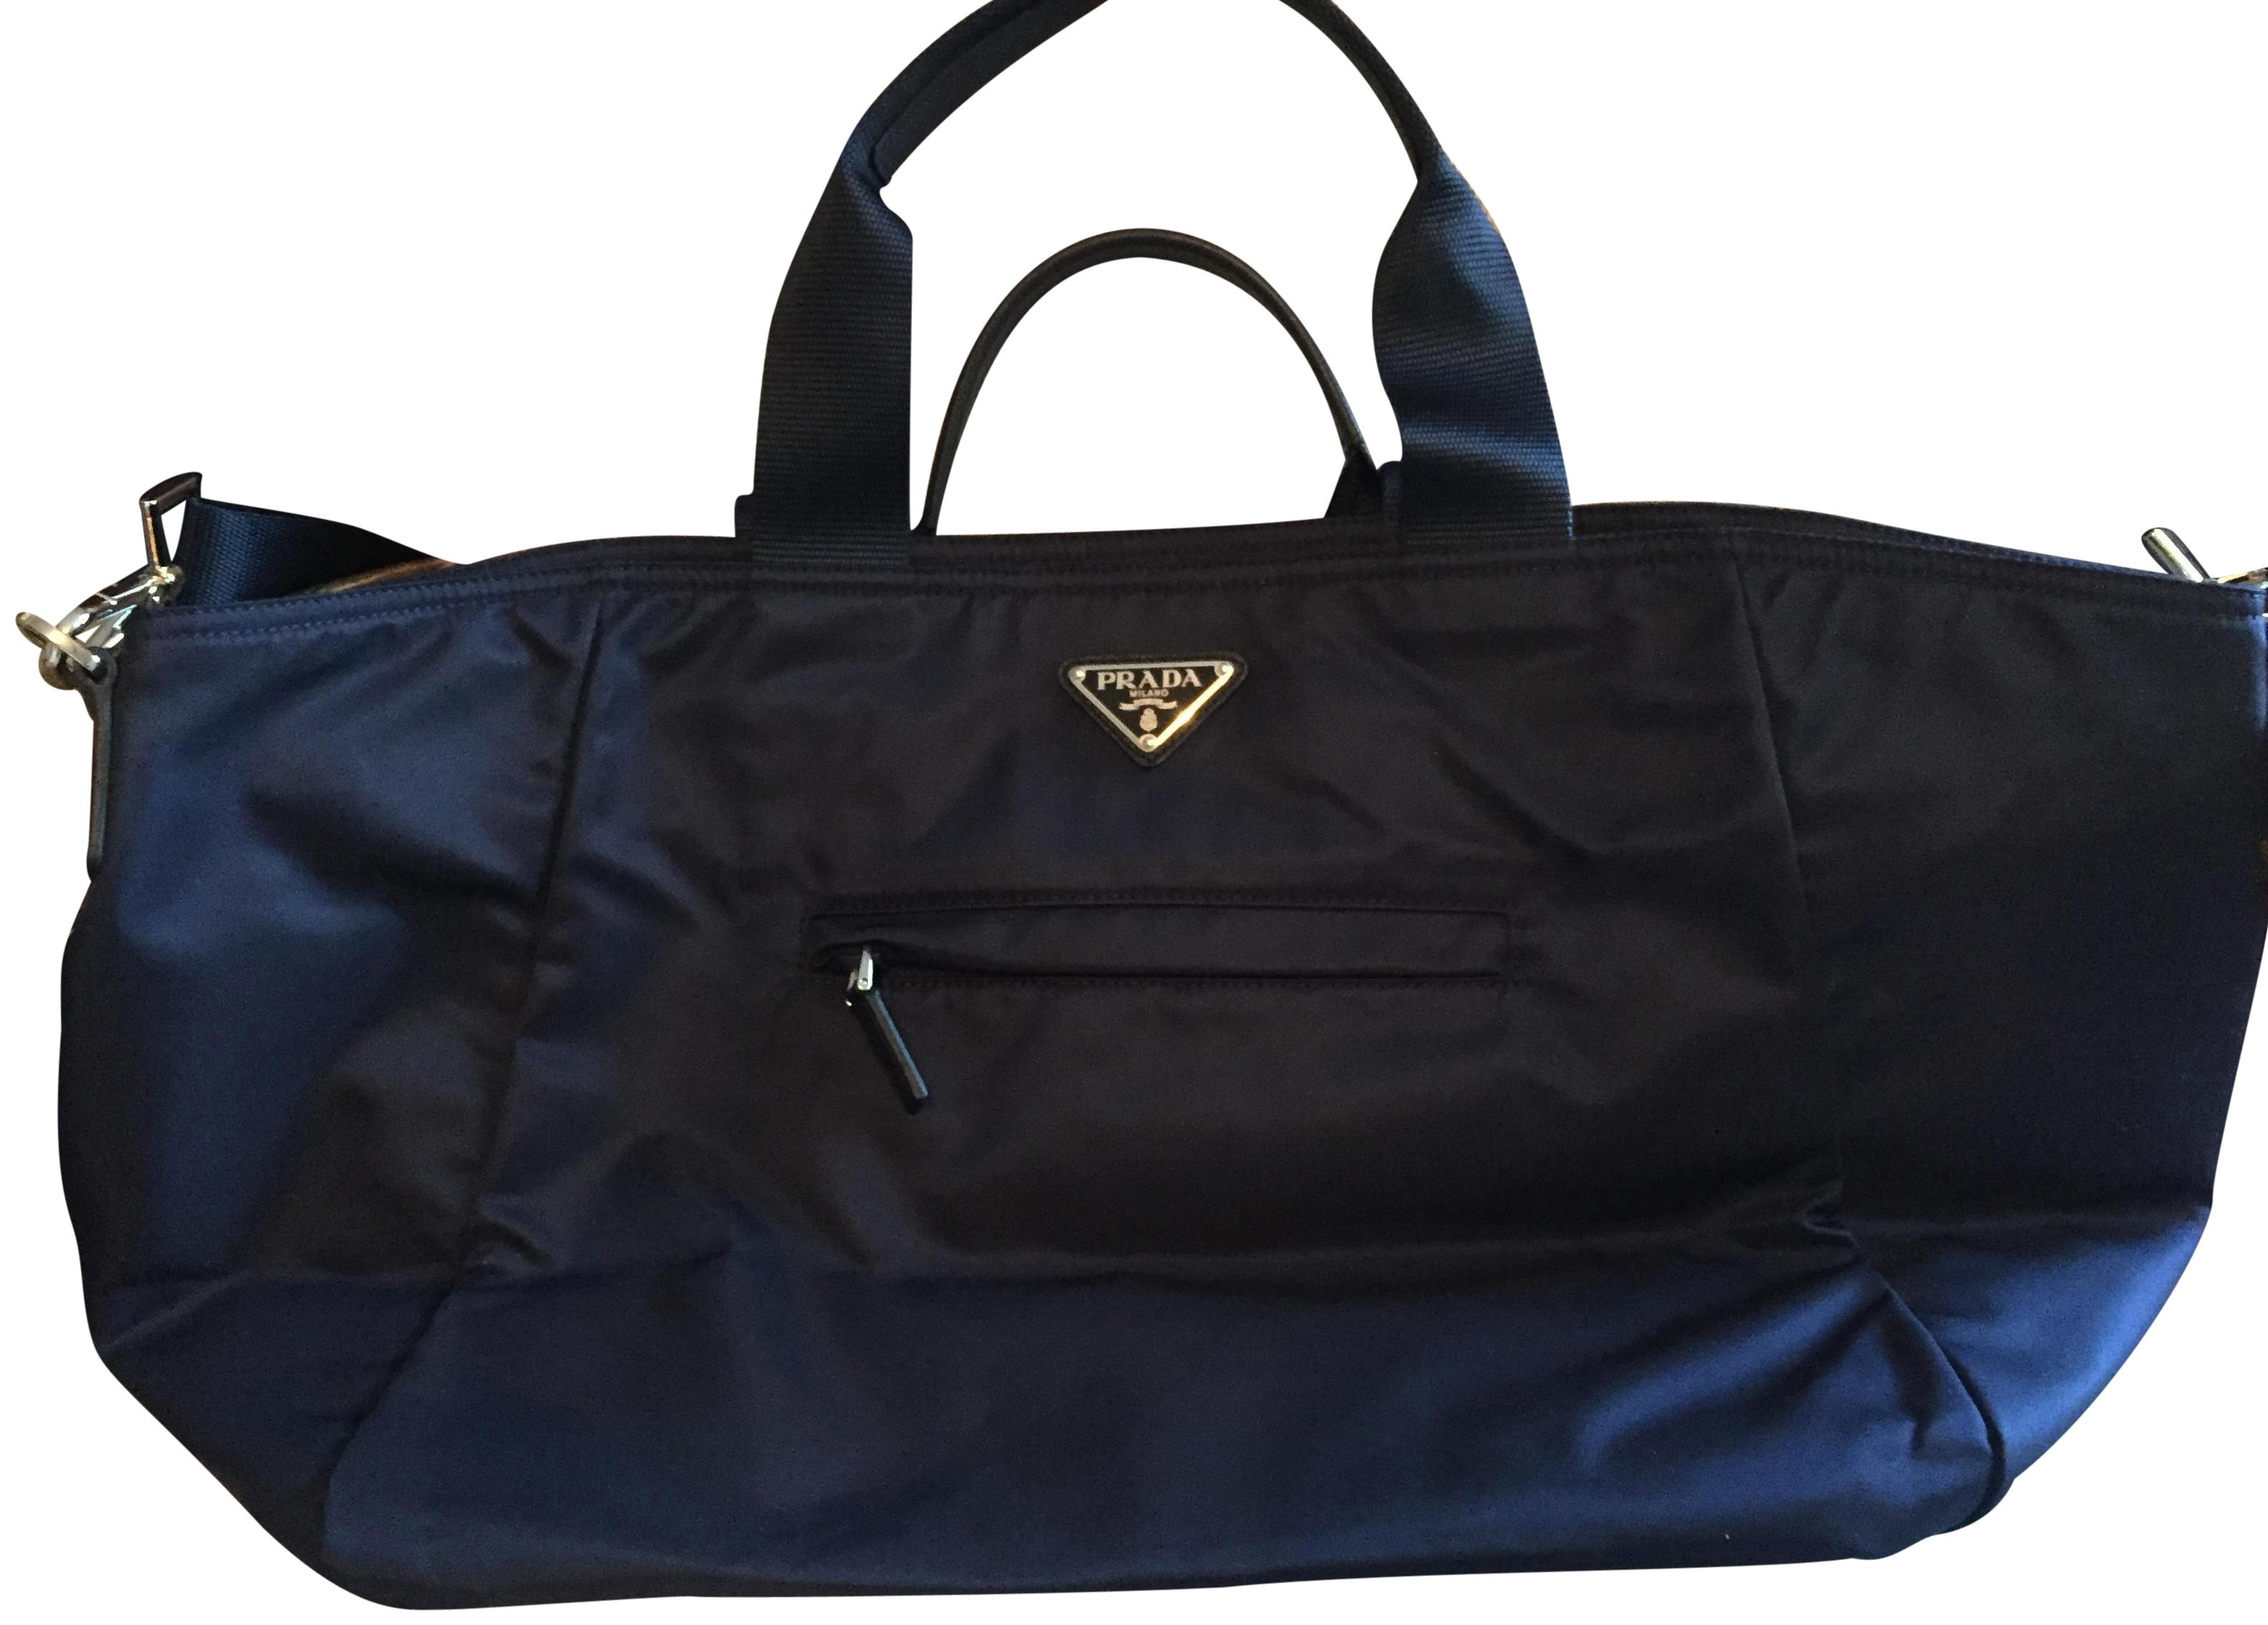 ddea34b563de ... store prada baltic blue travel bag 77246 4abb0